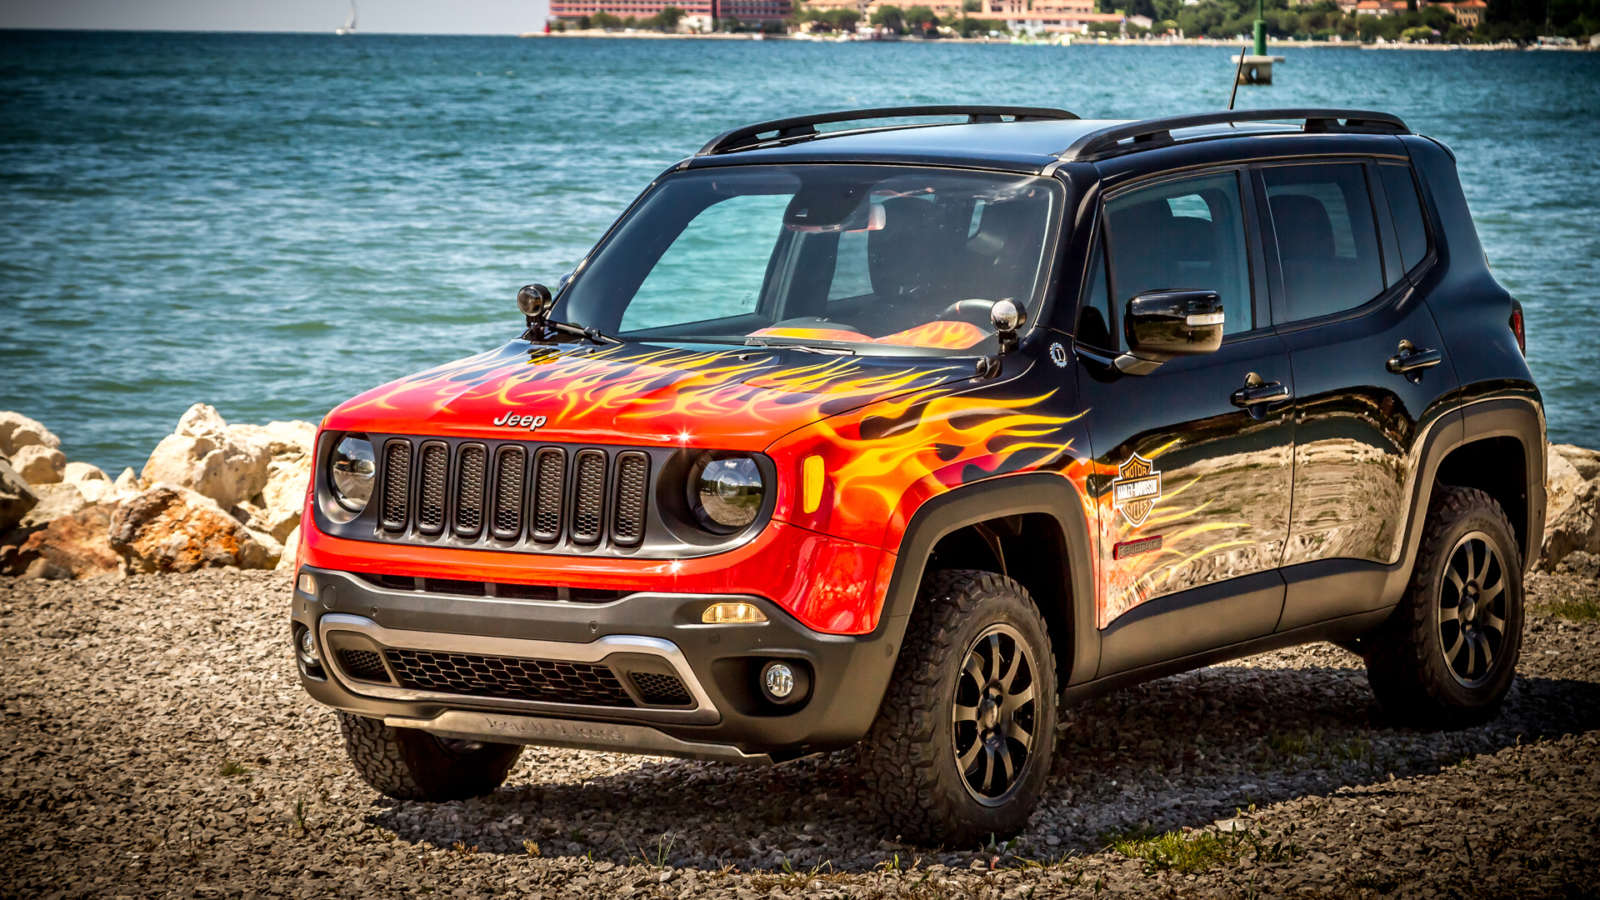 The Jeep Renegade Hell's Revenge gets lit up by Harley-Davidson